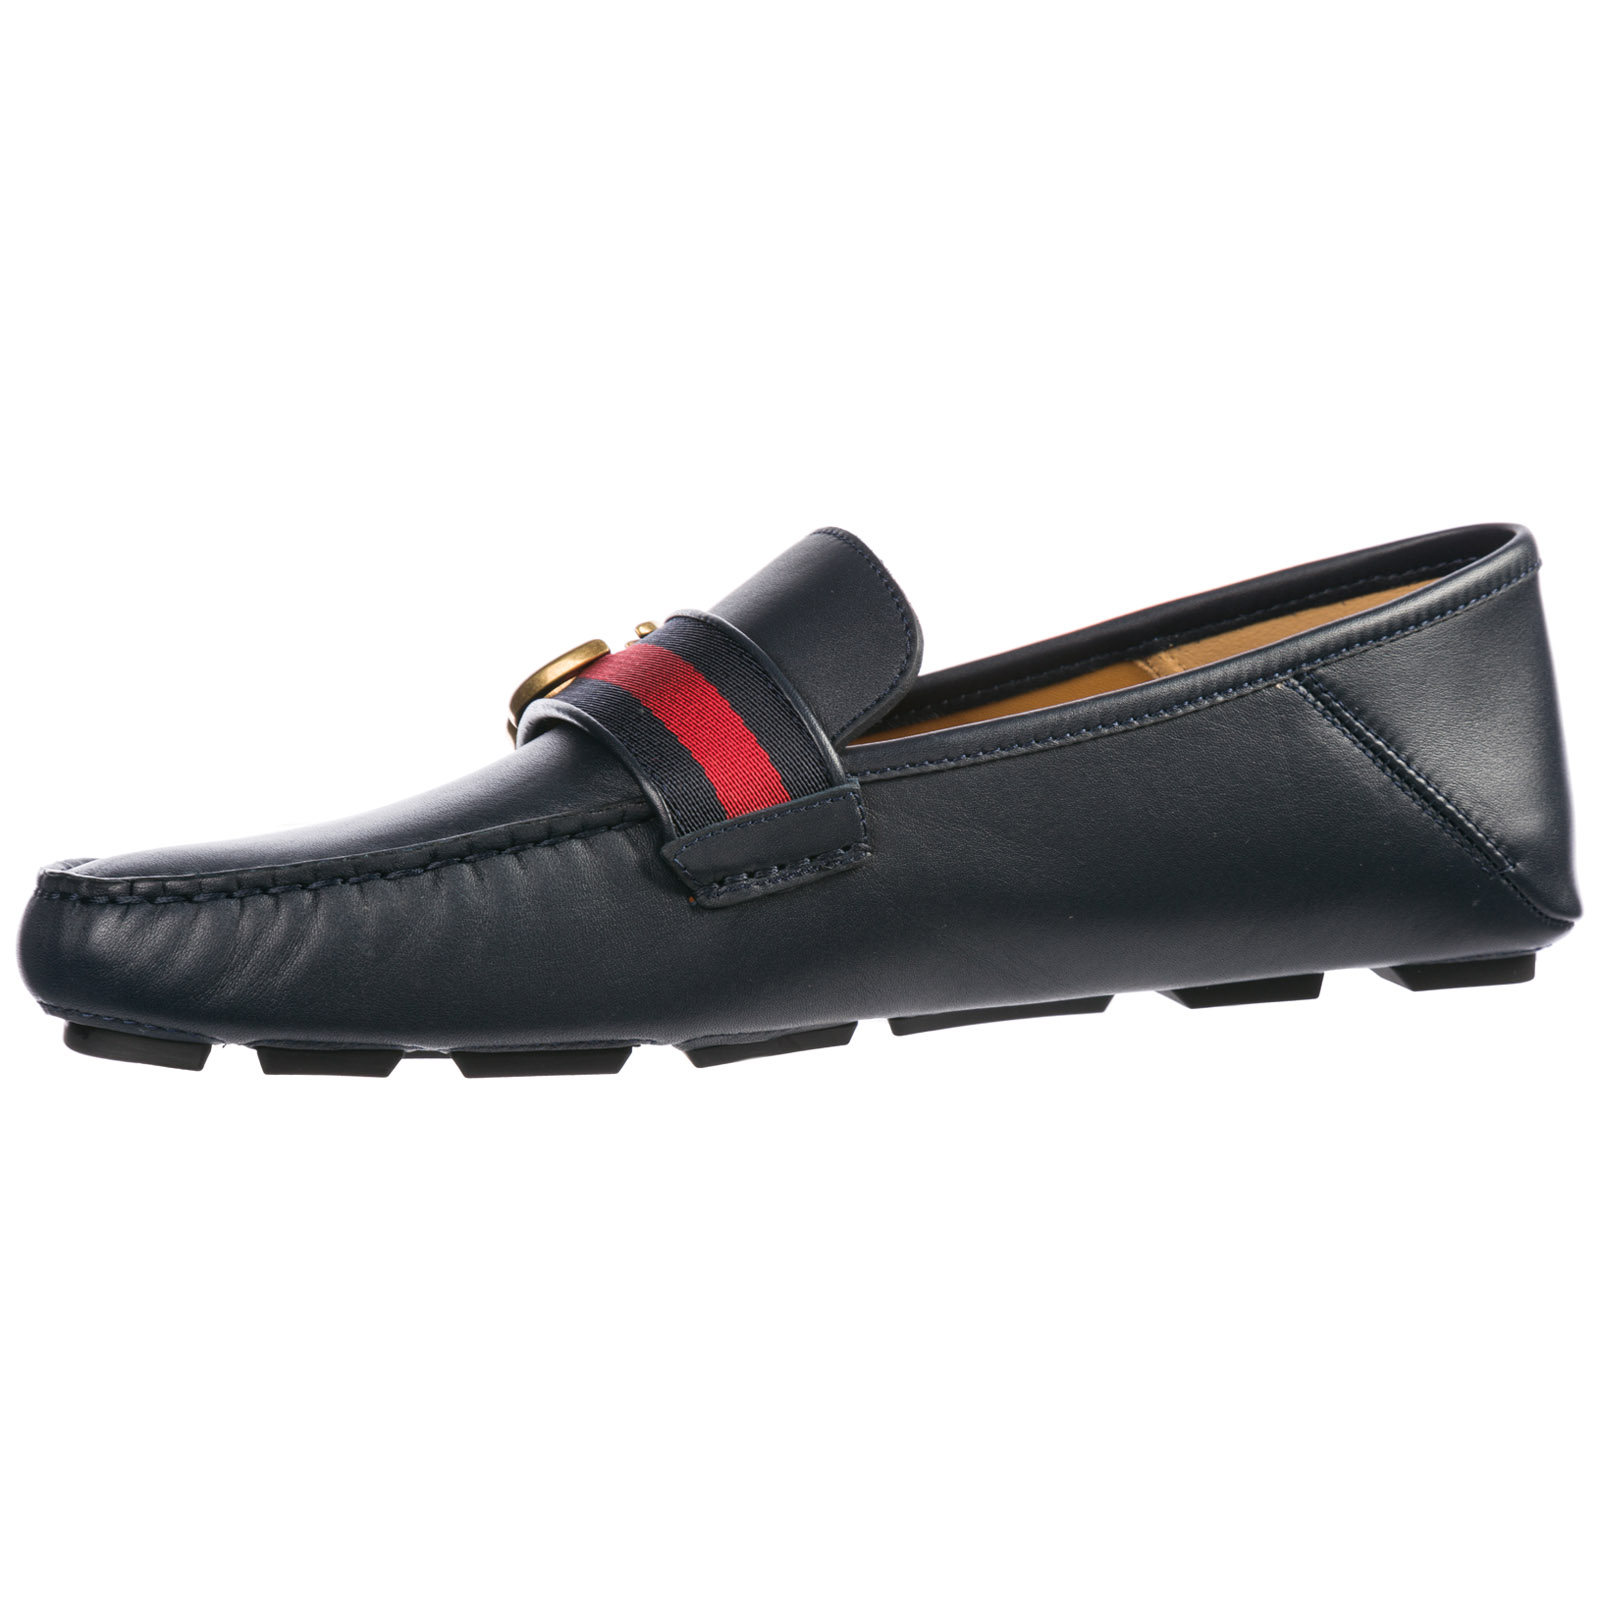 37f269caa87 ... Men s leather loafers moccasins ...